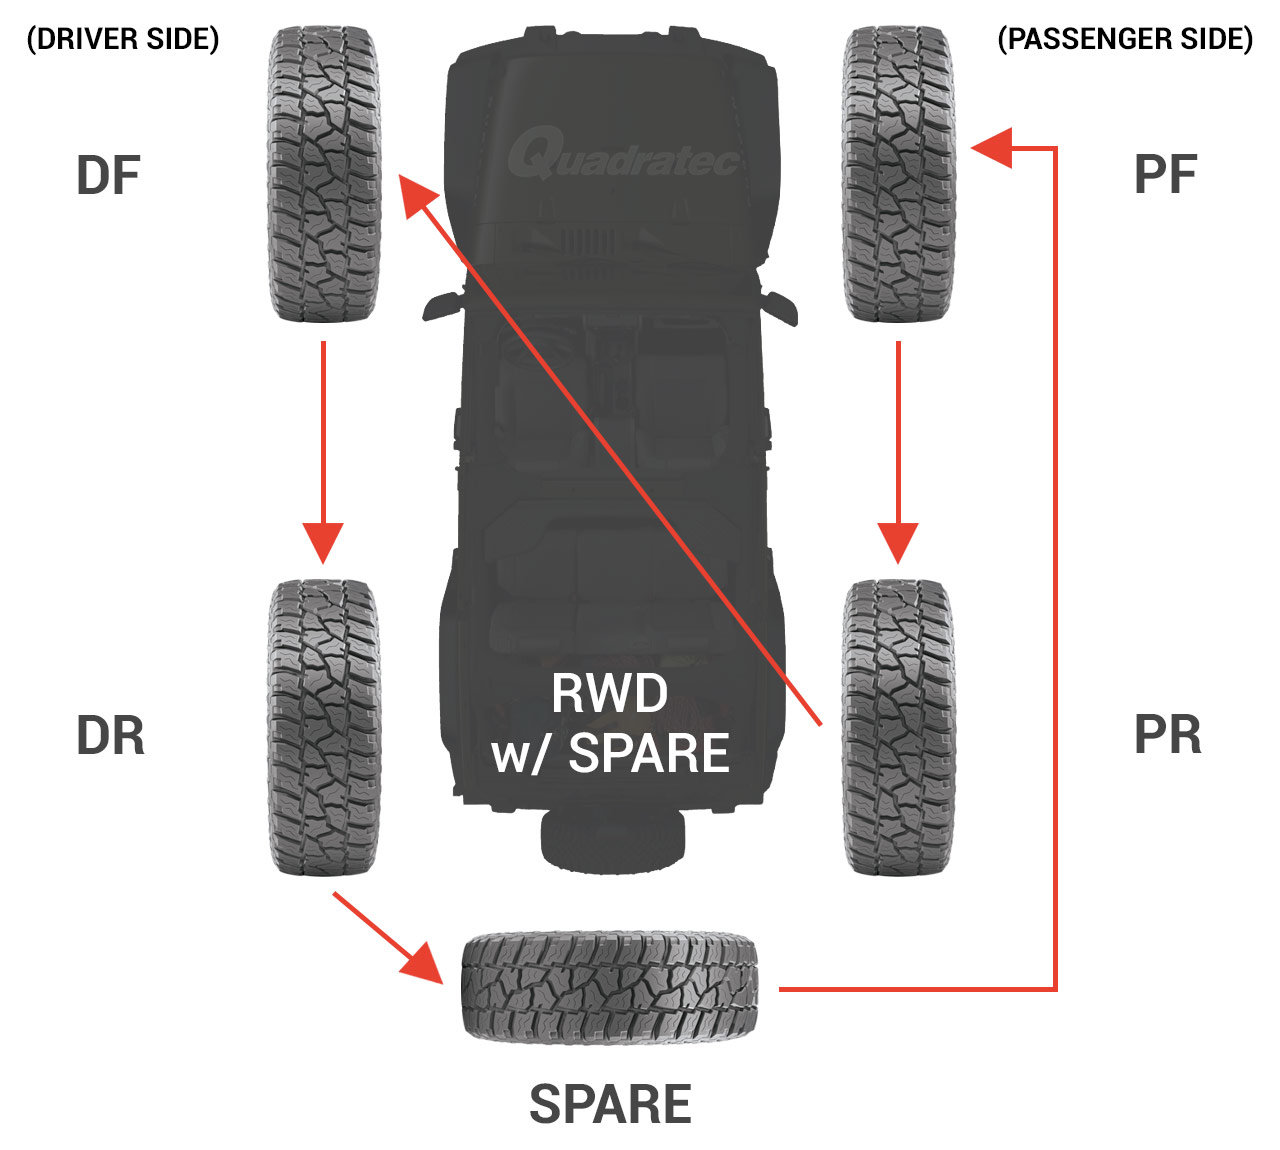 jeep-tire-rotation-with-spare-diagram.jpg